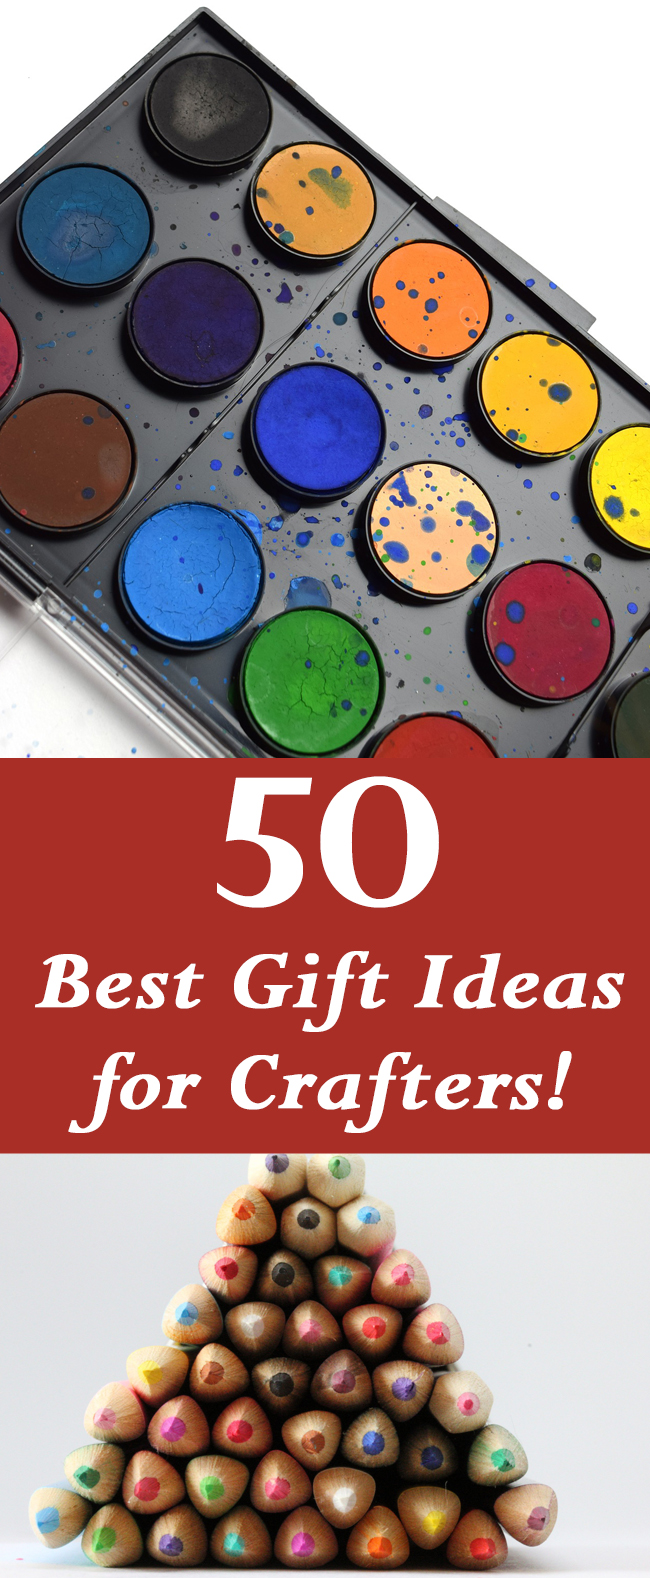 50 Great Gift Ideas For Crafters The Graphics Fairy